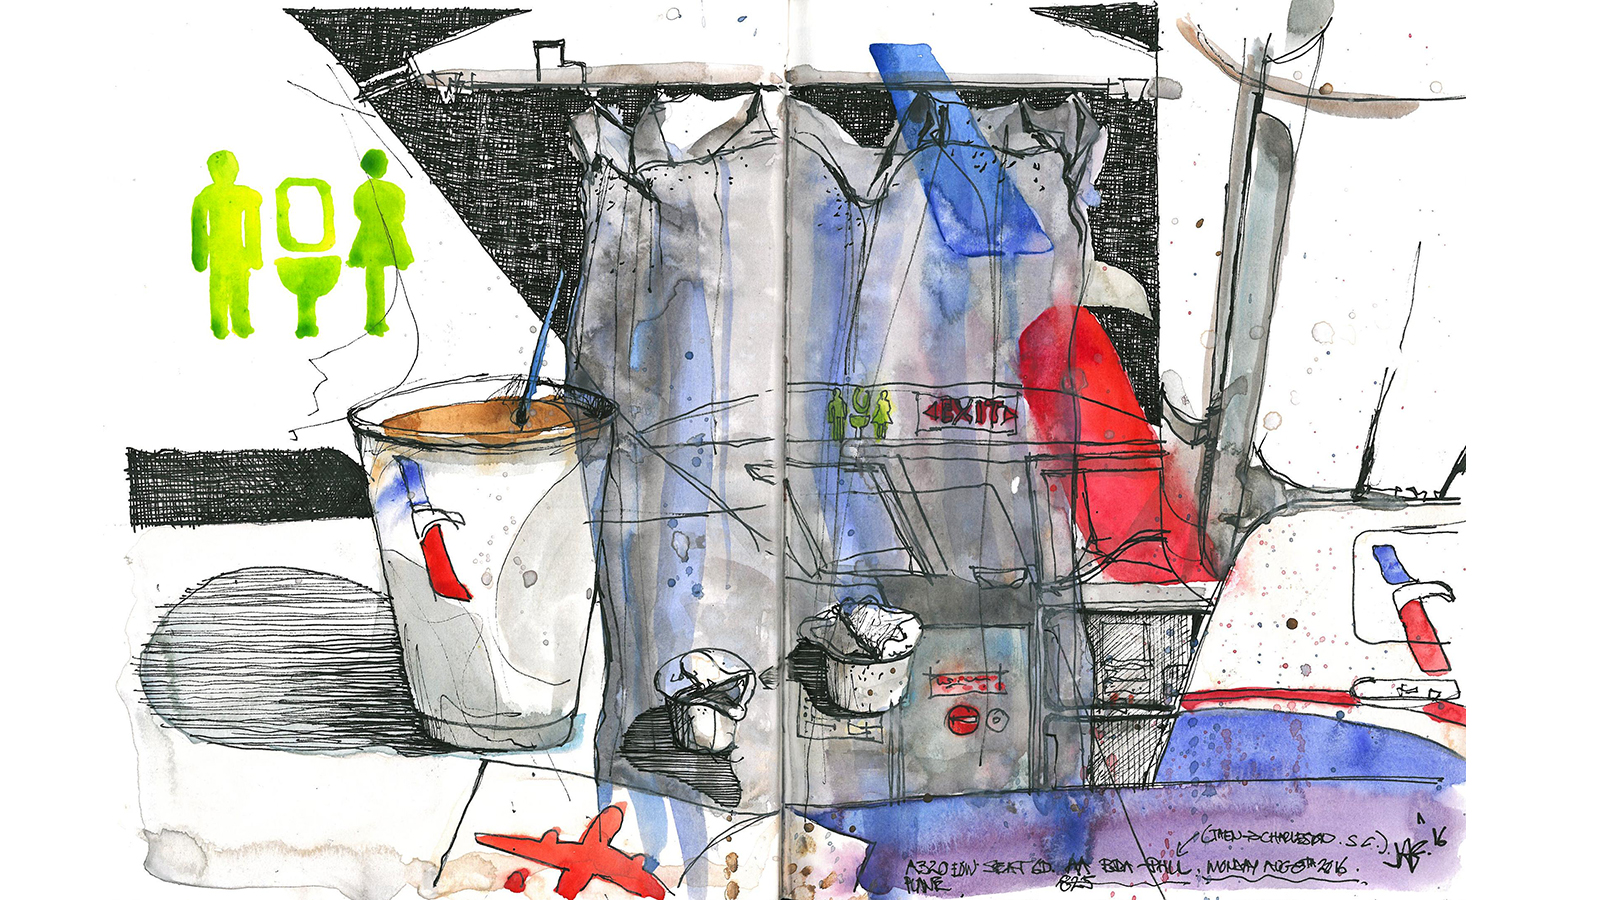 Painting on planes: Stunning sketches of airplane cabins | CNN Travel